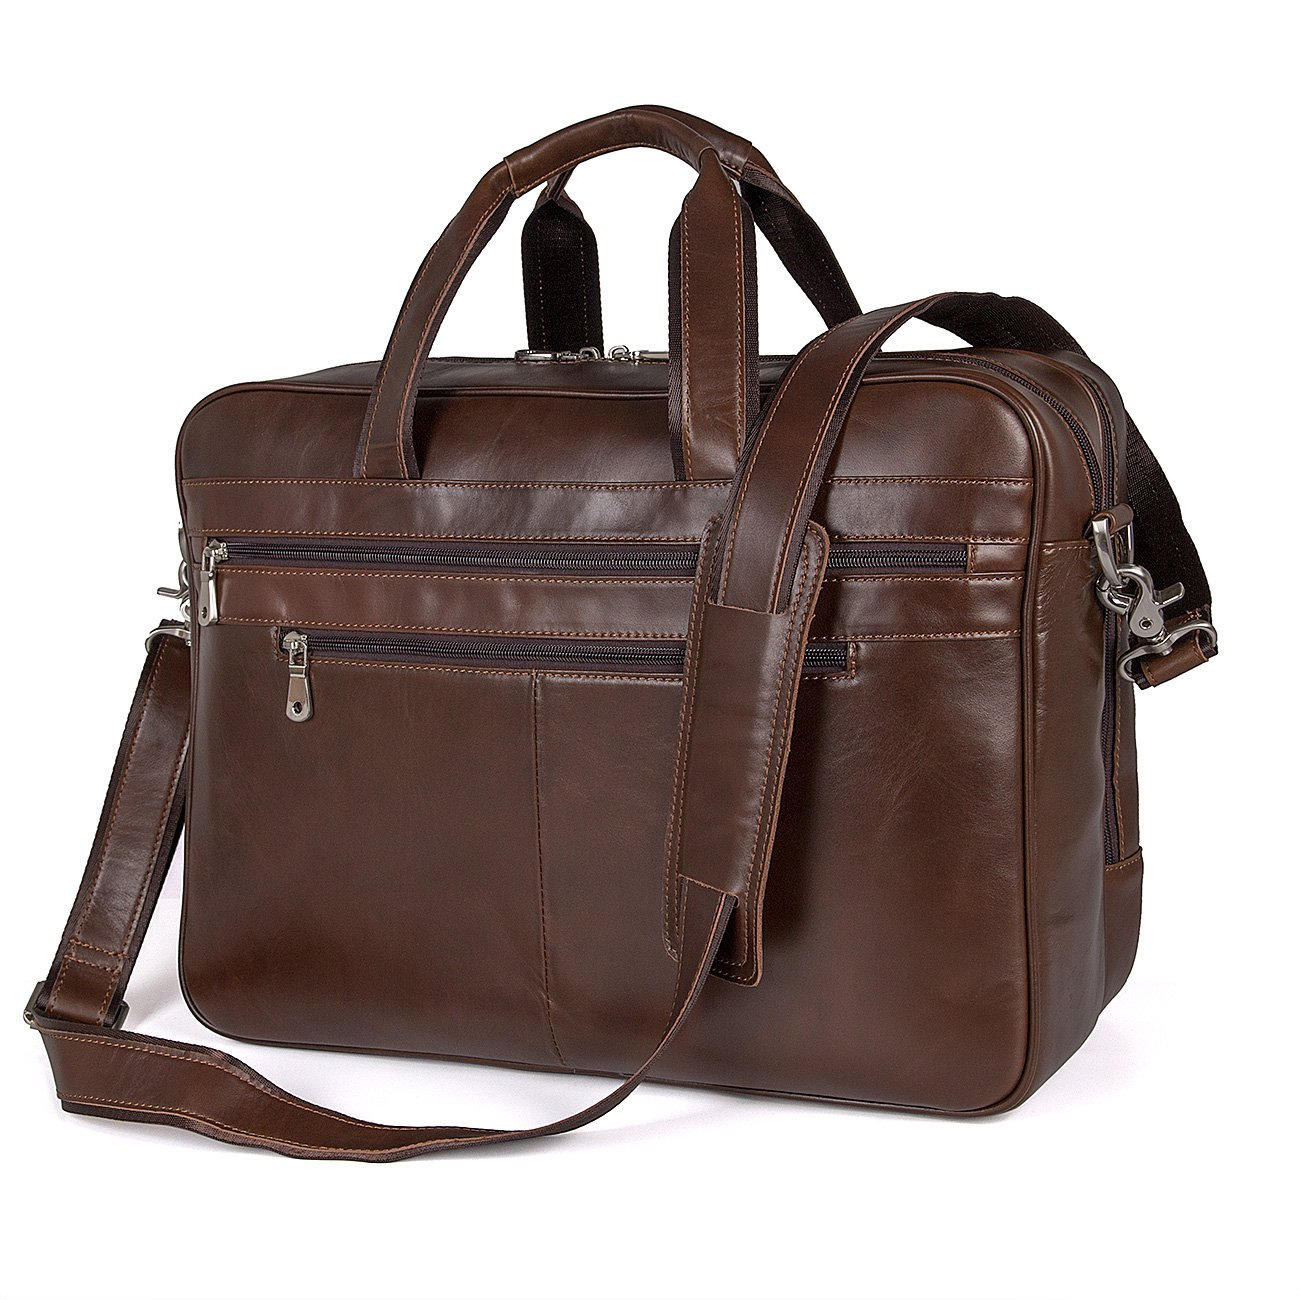 Augus Business Travel Brifecase Genuine Leather Duffel Bags for Men Laptop Bag fits 17 inches Laptop